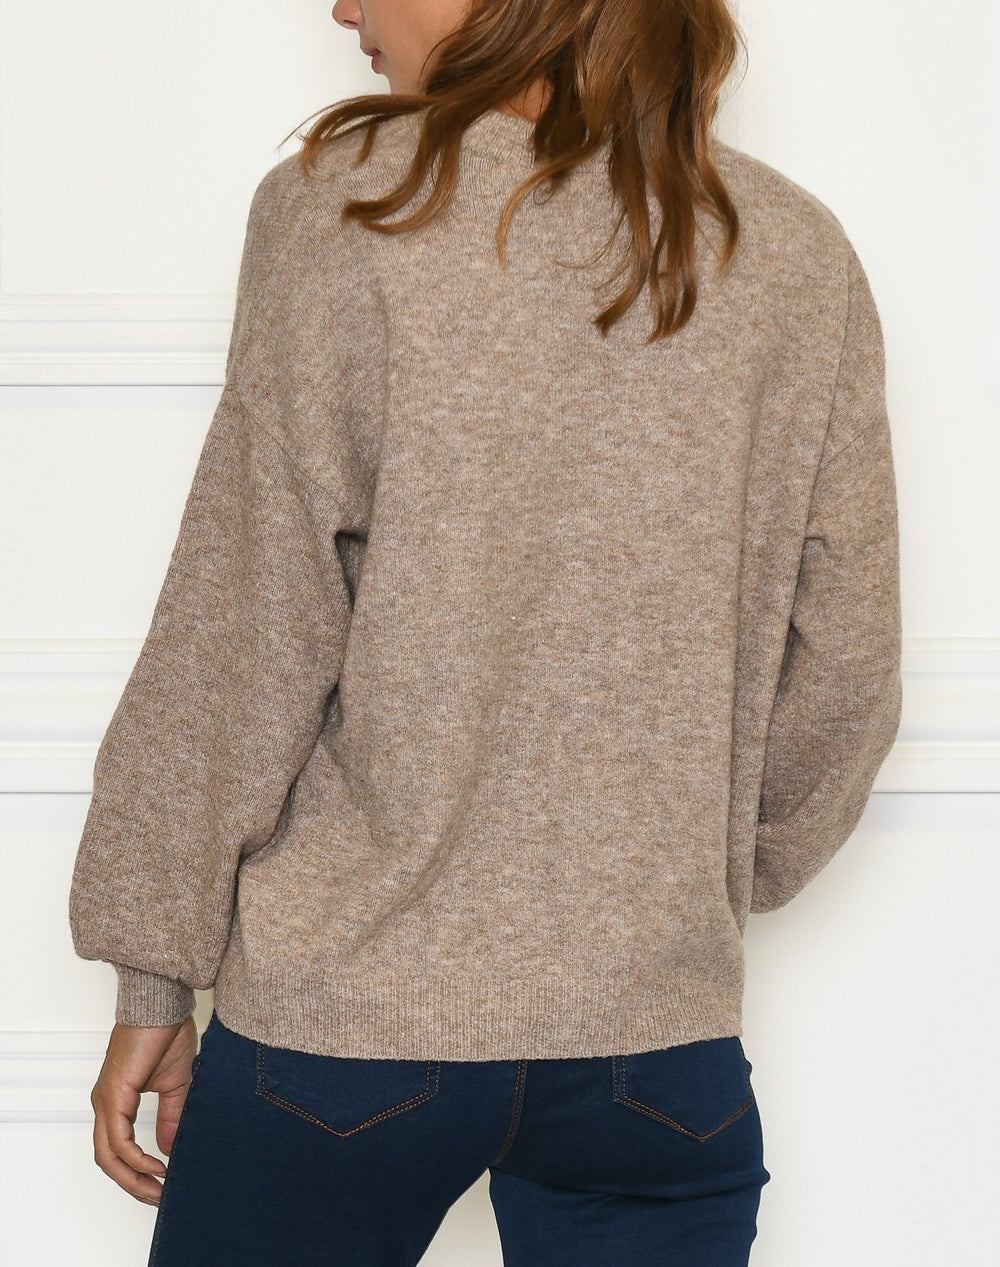 Cream AnghaCR knit cardigan RP taupe gray melange - Online-Mode